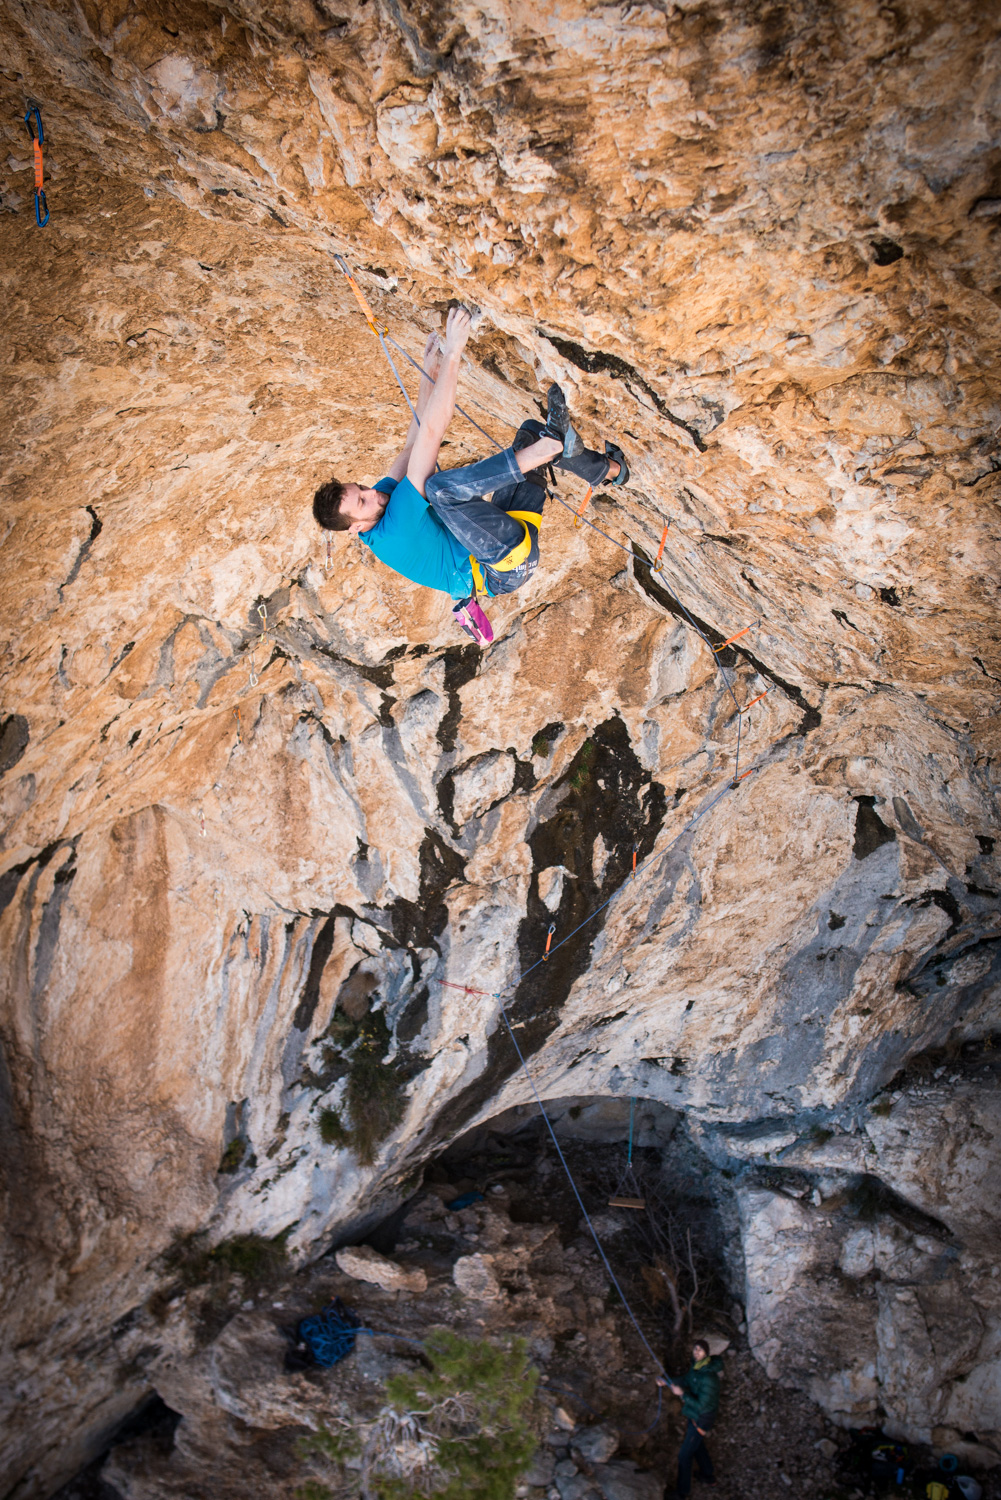 Slovenian climber Jernej Kruder made the first ascent of Dugi rat at the crag Vrulja close to Omiš in Croatia. Graded 9a+